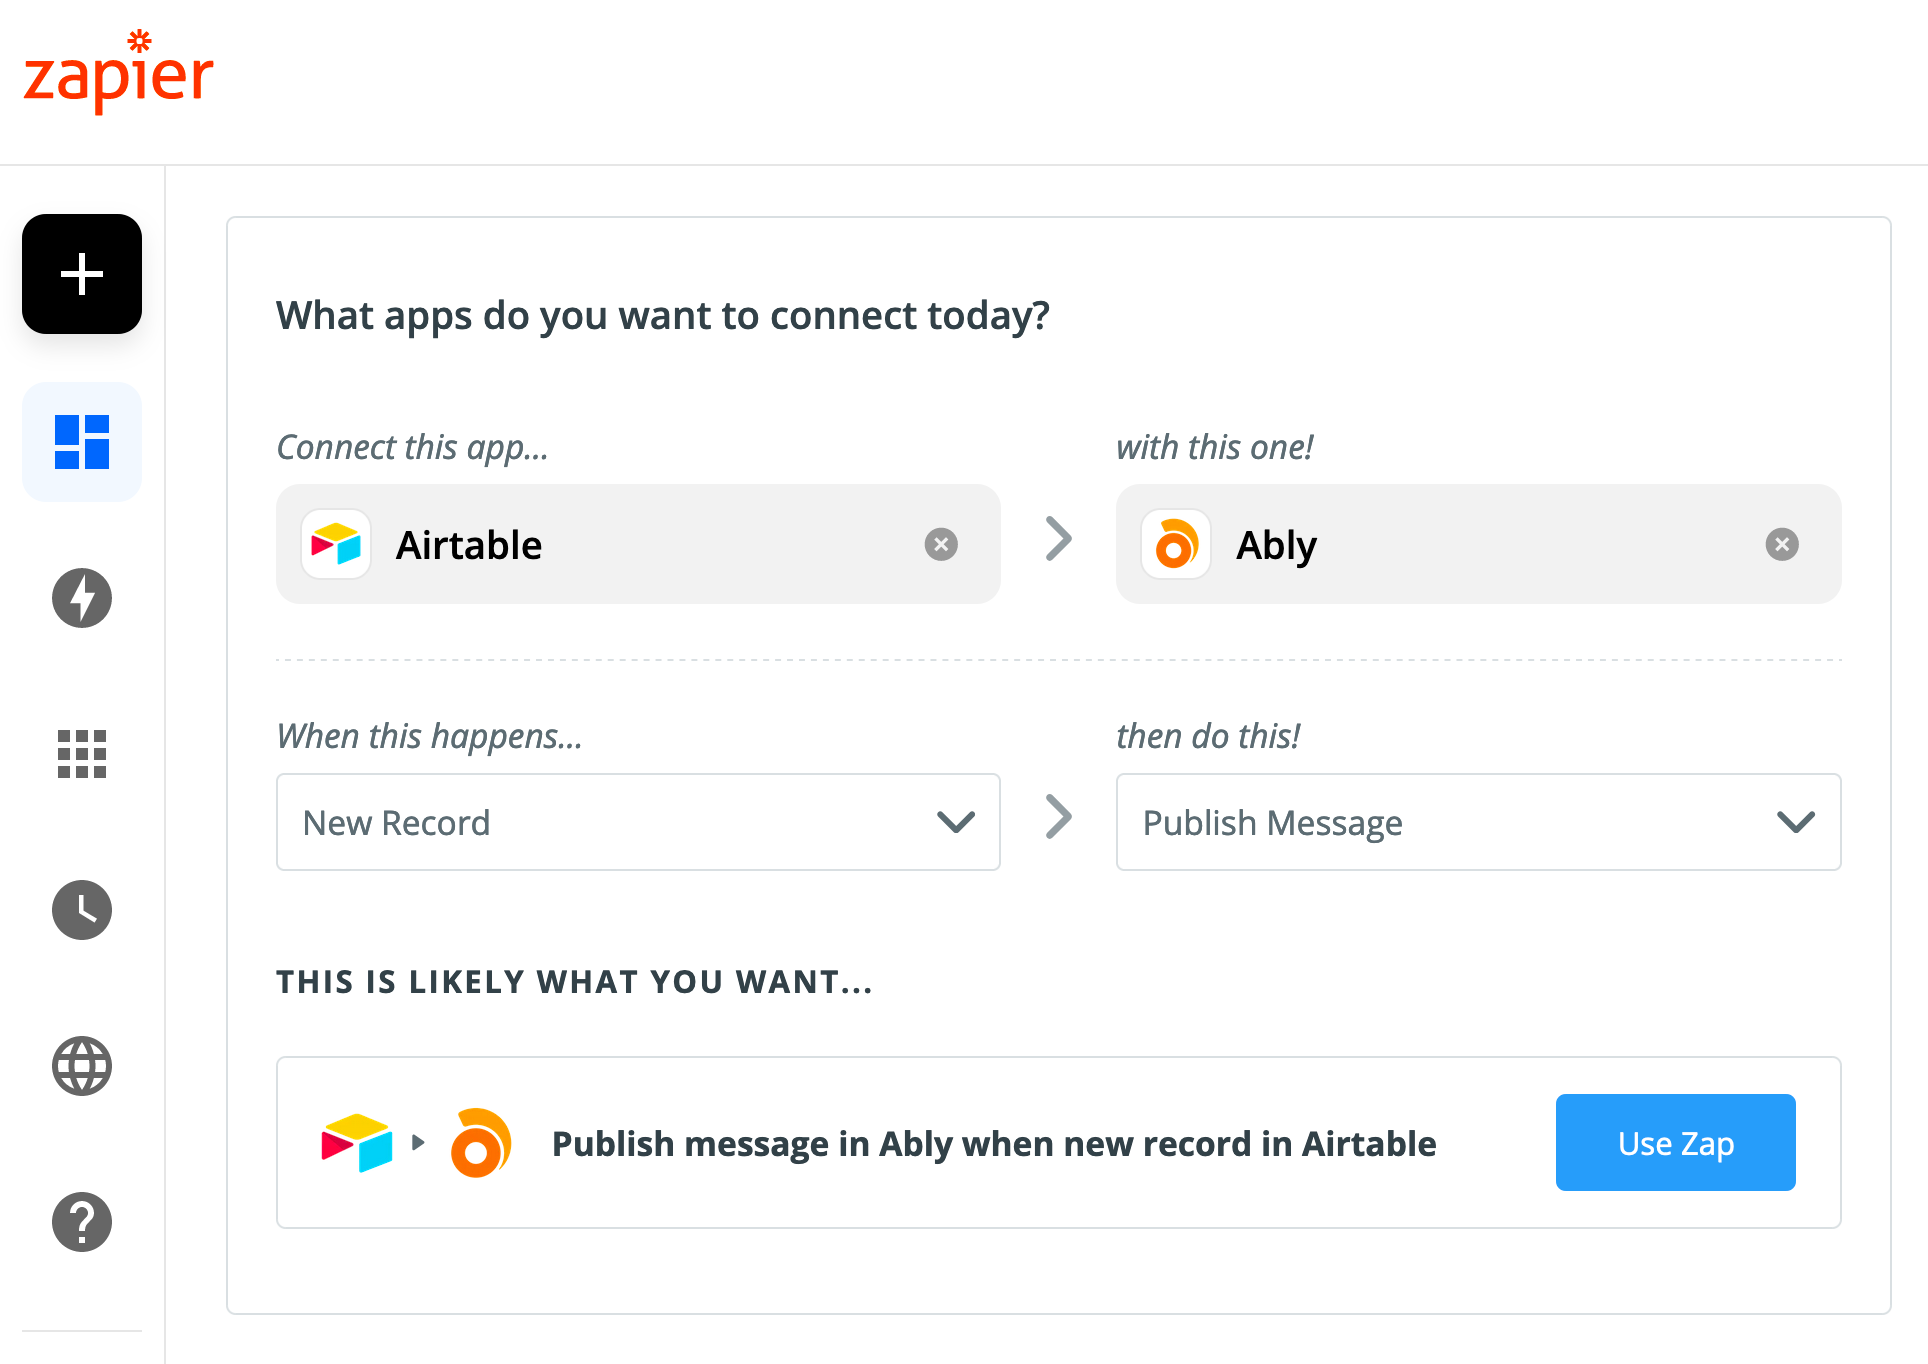 Using Zapier and Ably to convert Airtable into a realtime database